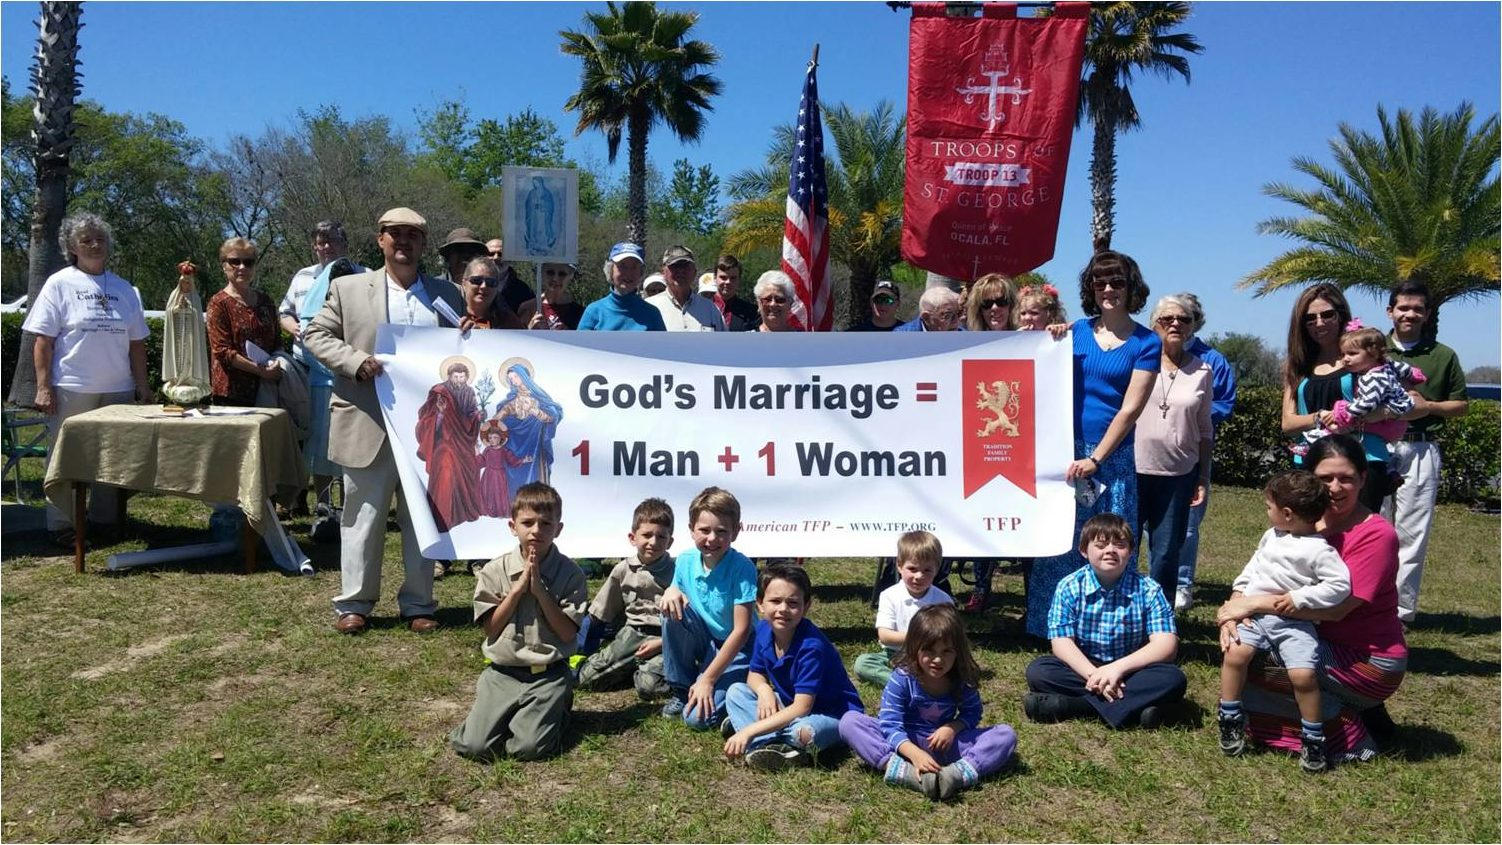 Ocala-TMC-March-2017-e1490141887321 Over Three Thousand Rallies For Marriage Make It Clear: It's One Man and One Woman